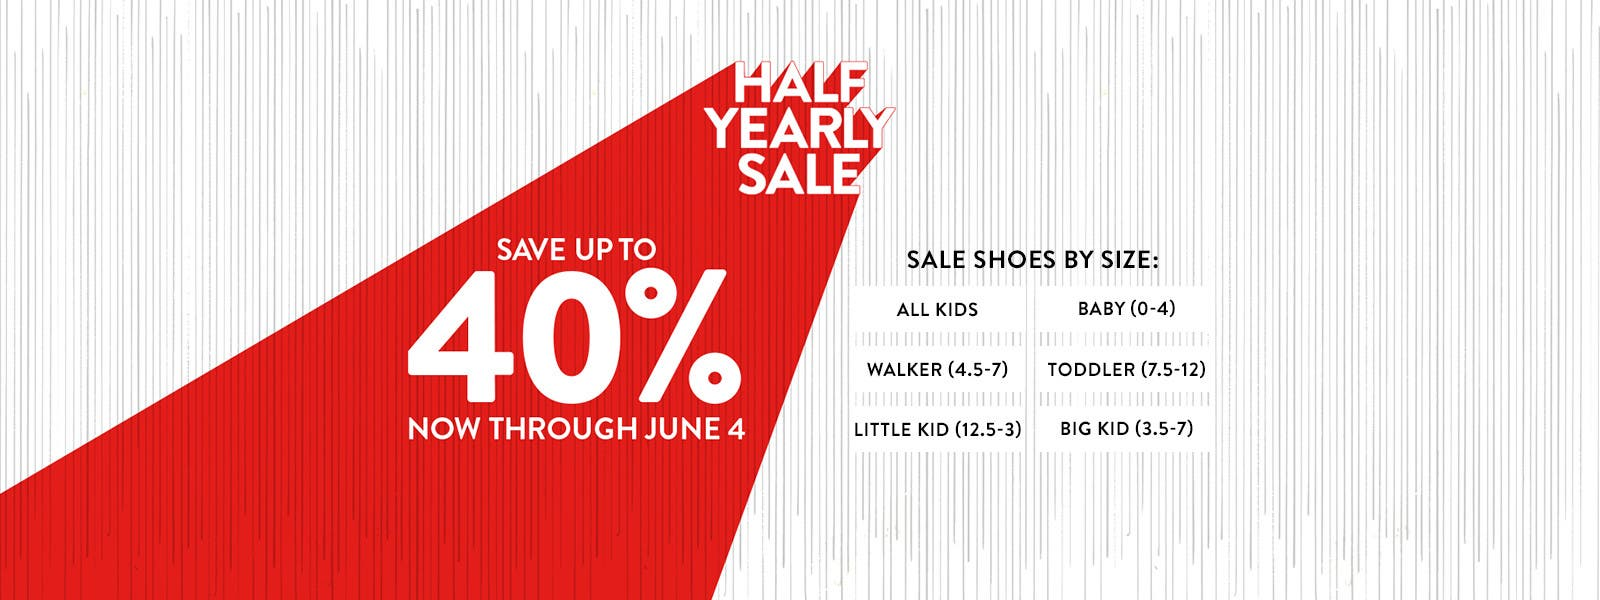 Half-Yearly Sale. Save up to 40% through June 4. Shop kids' sale shoes by size.